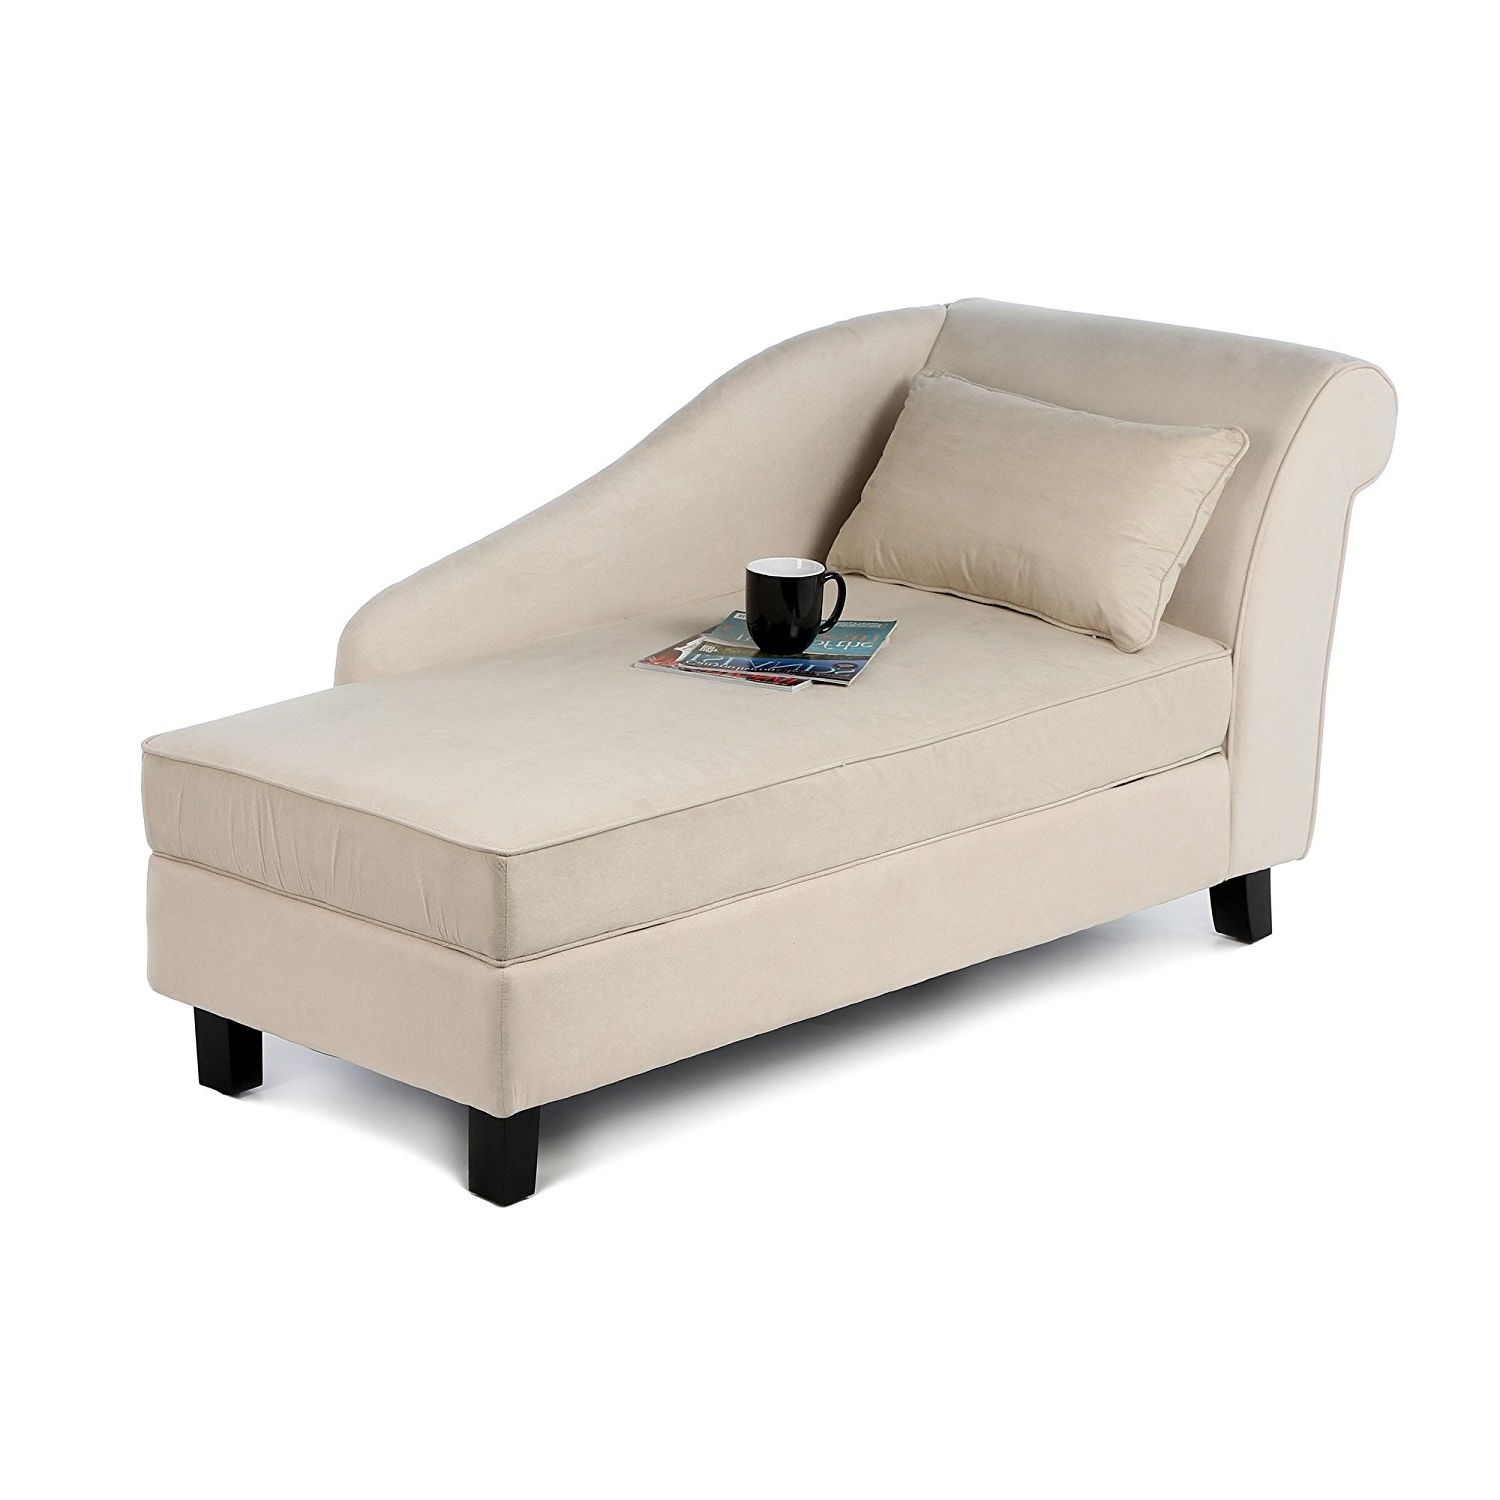 Amazon: Castleton Home Storage Chaise Lounge Modern Long Chair With Well Known Storage Chaise Lounges (View 3 of 15)